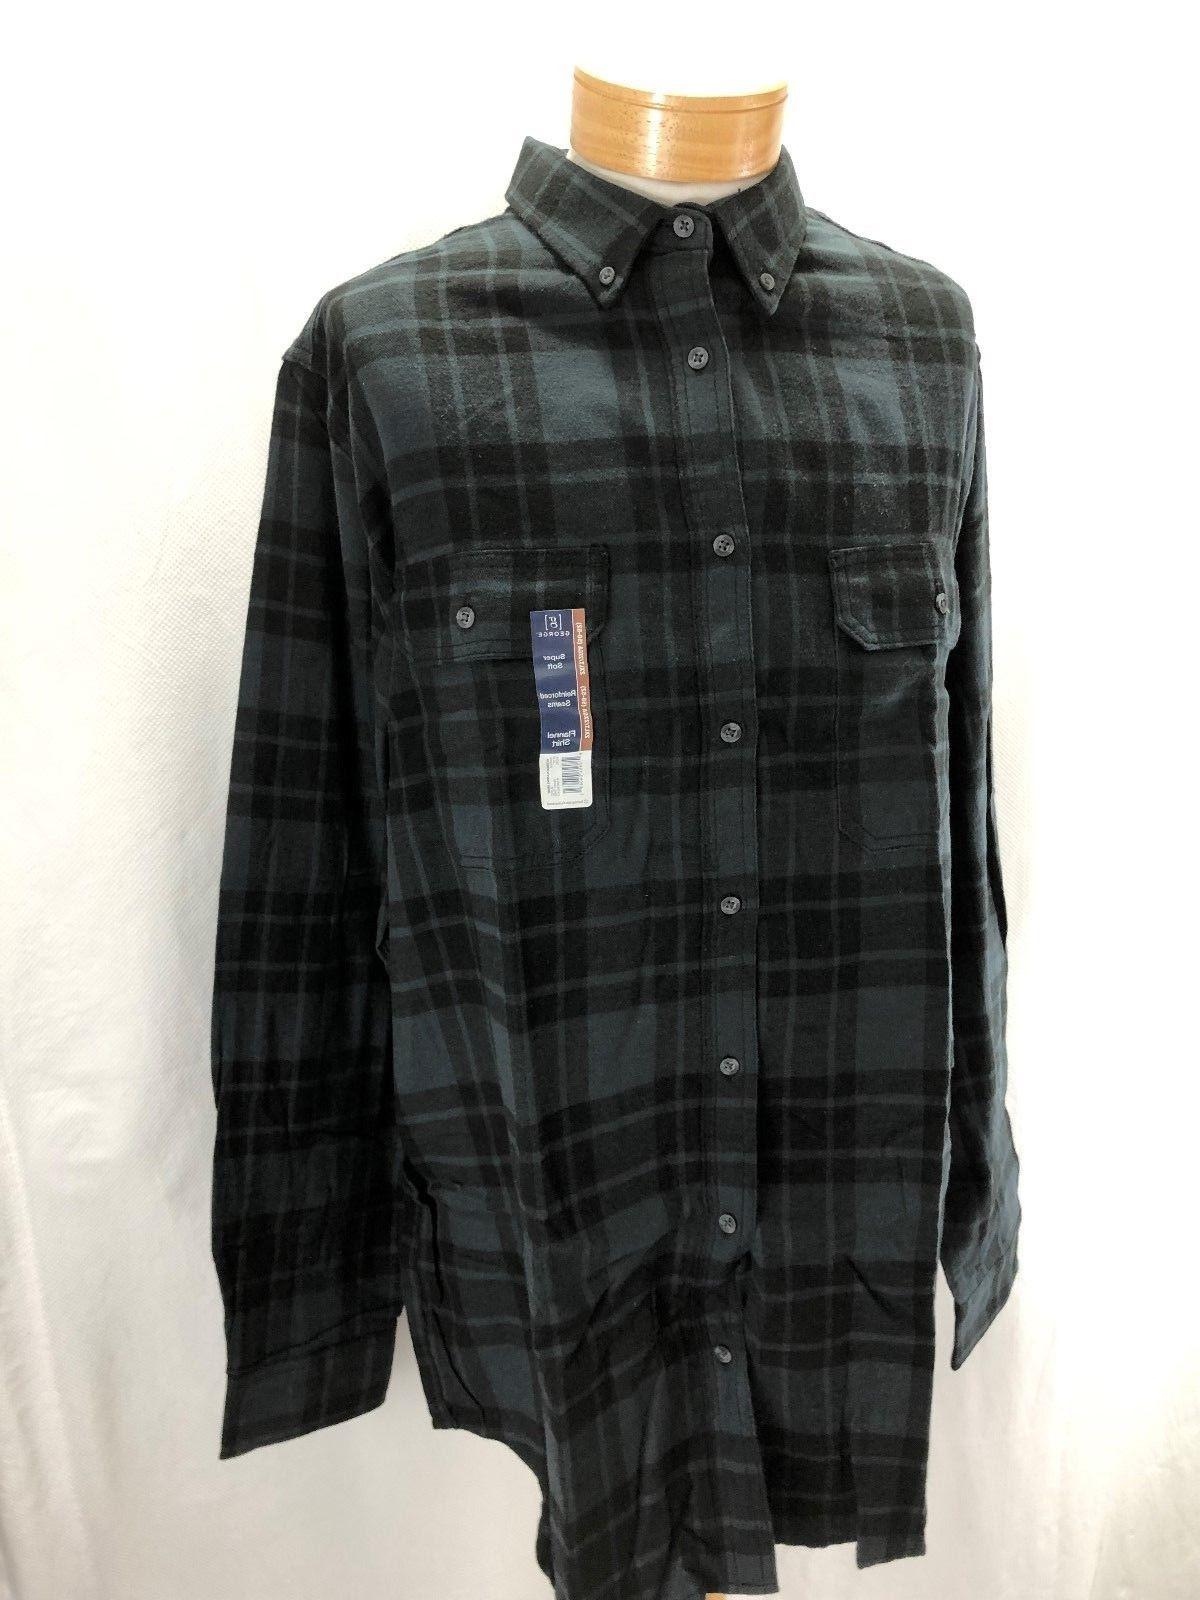 NEW FLANNEL SHIRT COTTON BLACK/GRAY